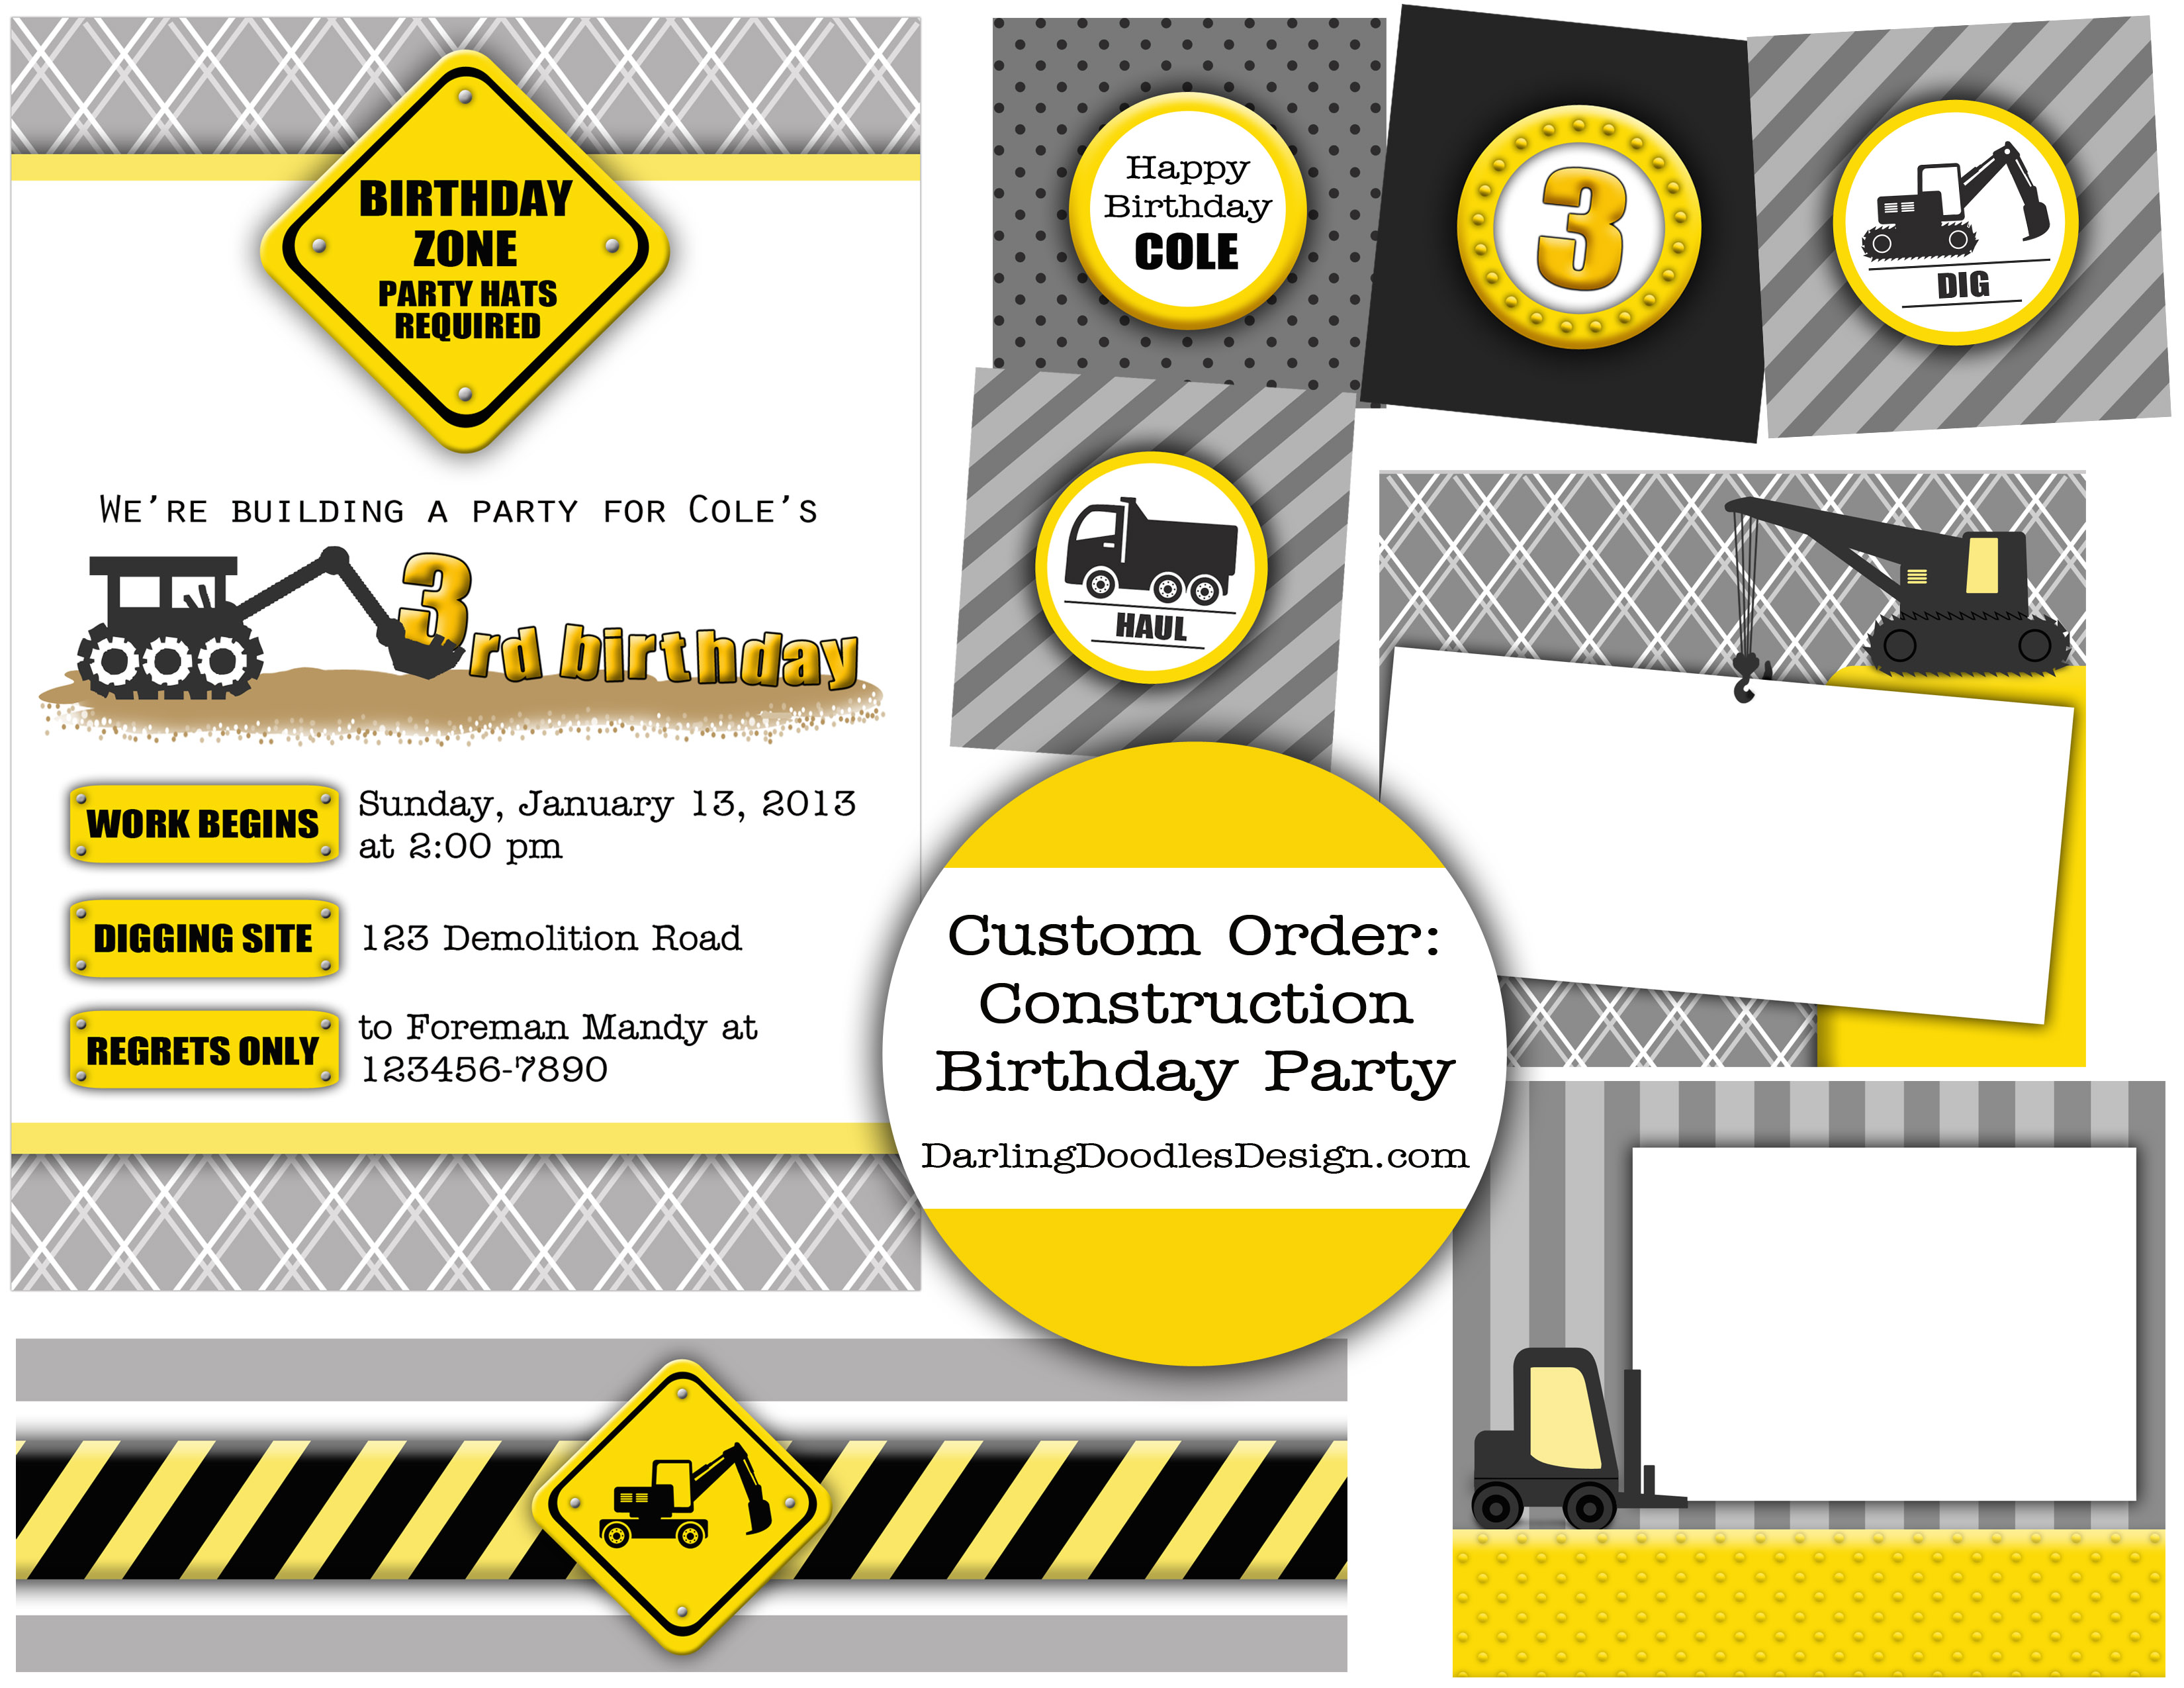 construction themed birthday party invitation templates ; Construction-Birthday-Party-Invitation-Templates-to-get-ideas-how-to-make-your-own-birthday-Invitation-design-18